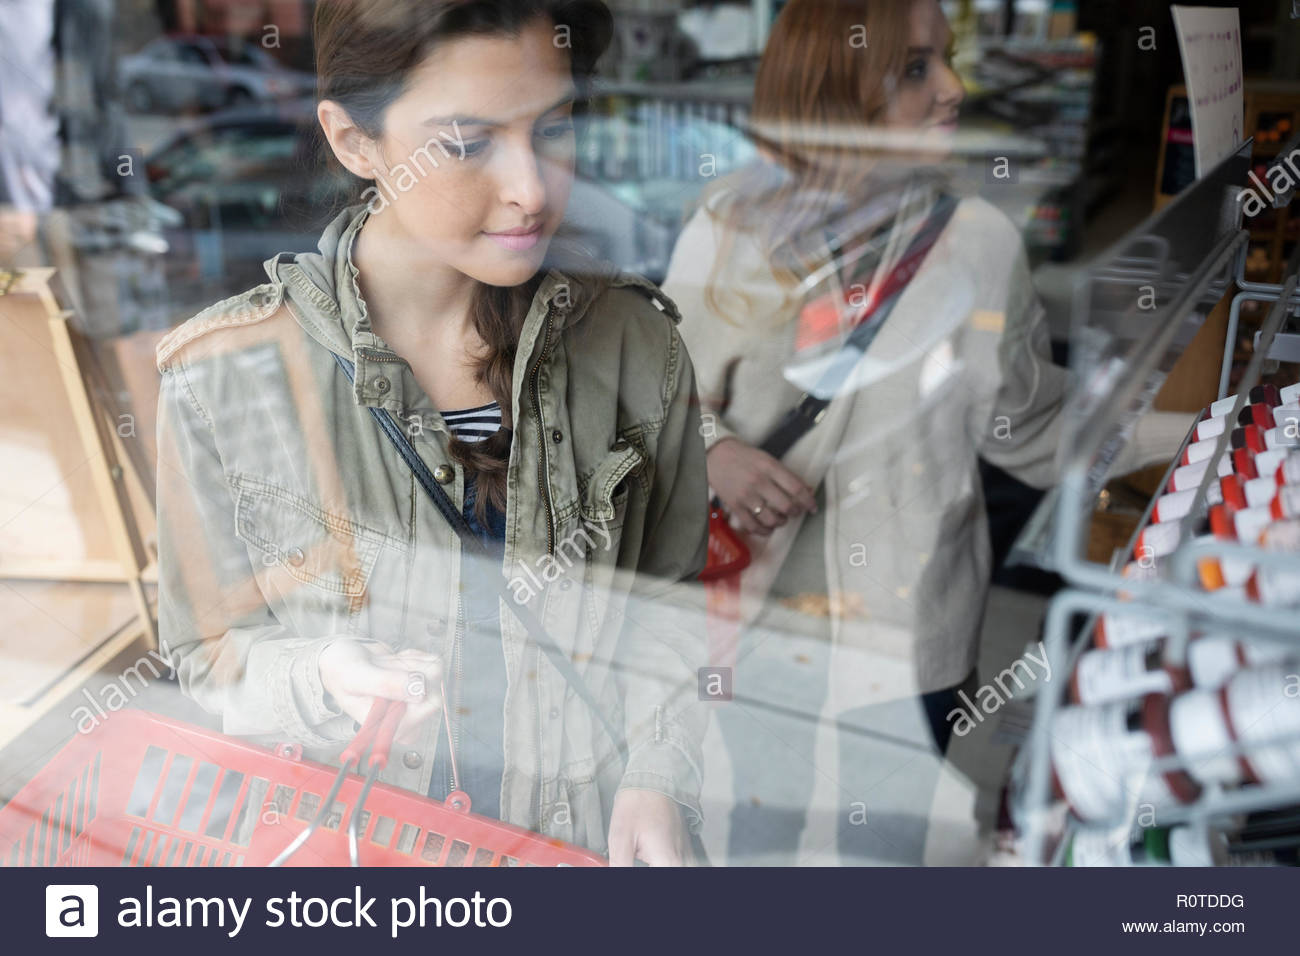 Woman shopping in art supply shop - Stock Image